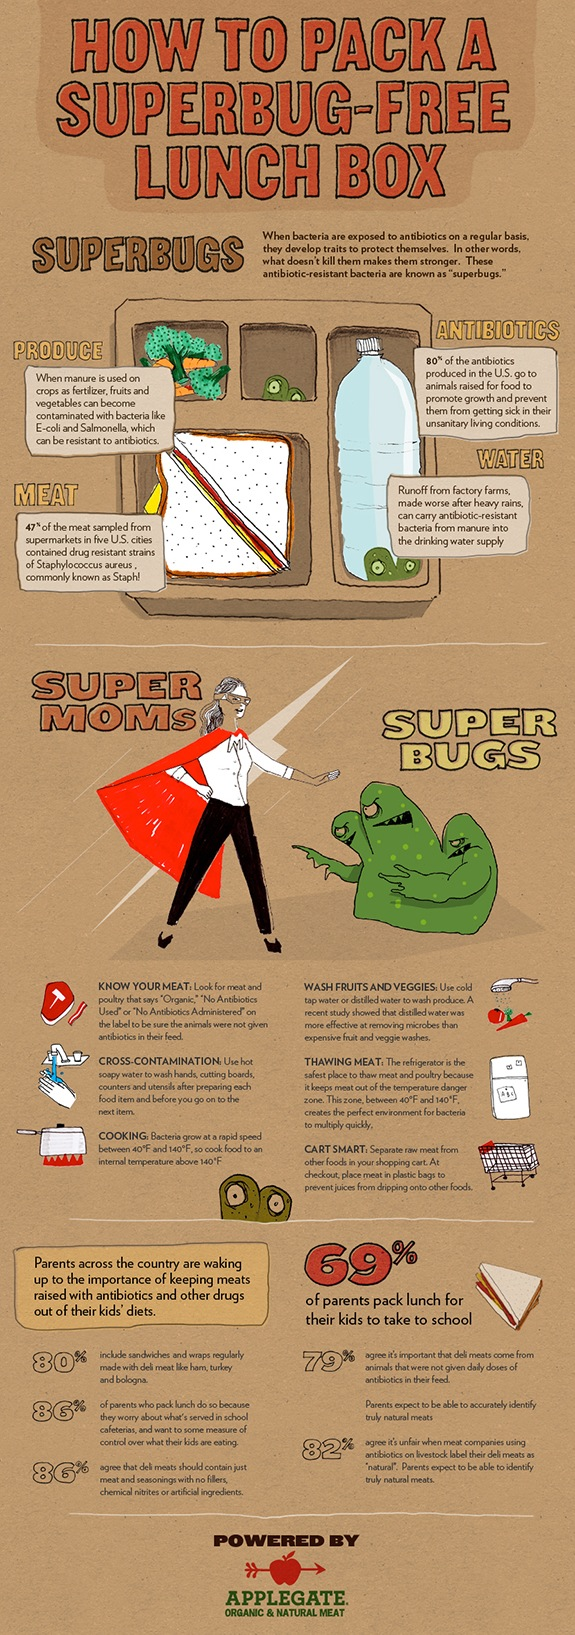 Applegate Super Moms vs. Super Bugs Infographic